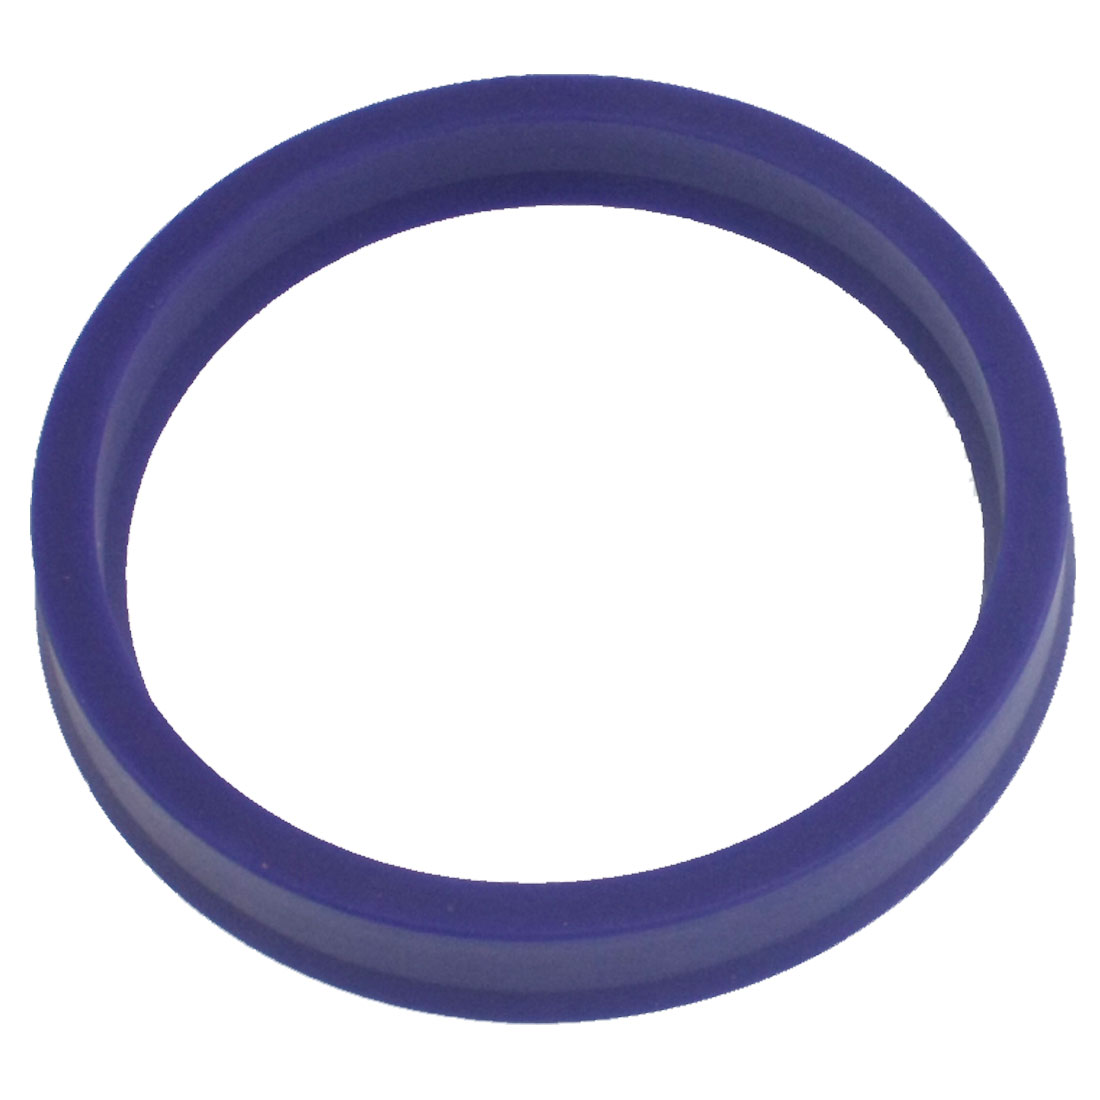 125mmx103mmx18mm Pneumatic Sealing Rings Purple Gaskets